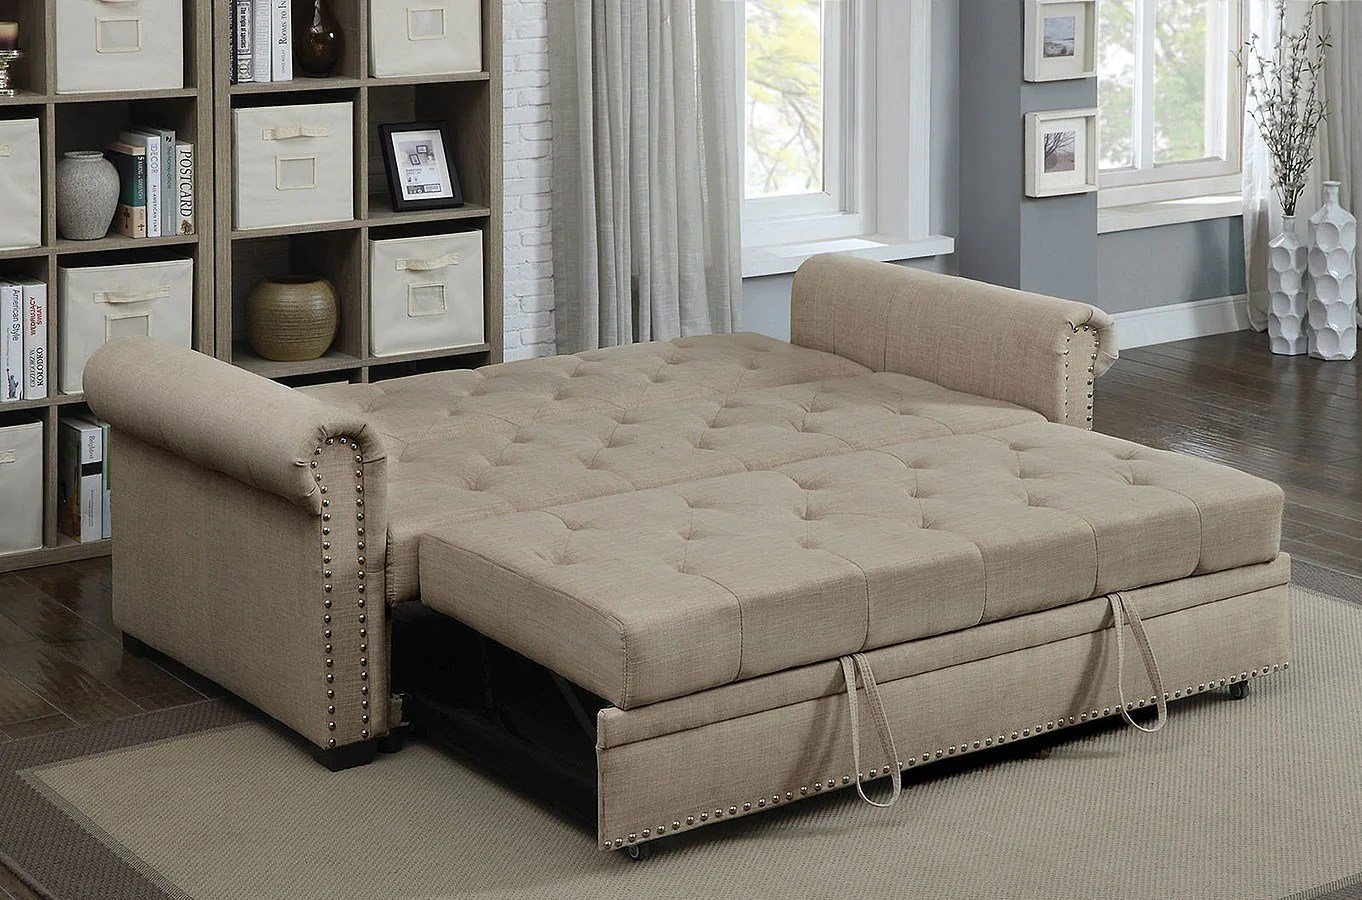 Iona Futon Sofa Bed Beige Fully Furnished